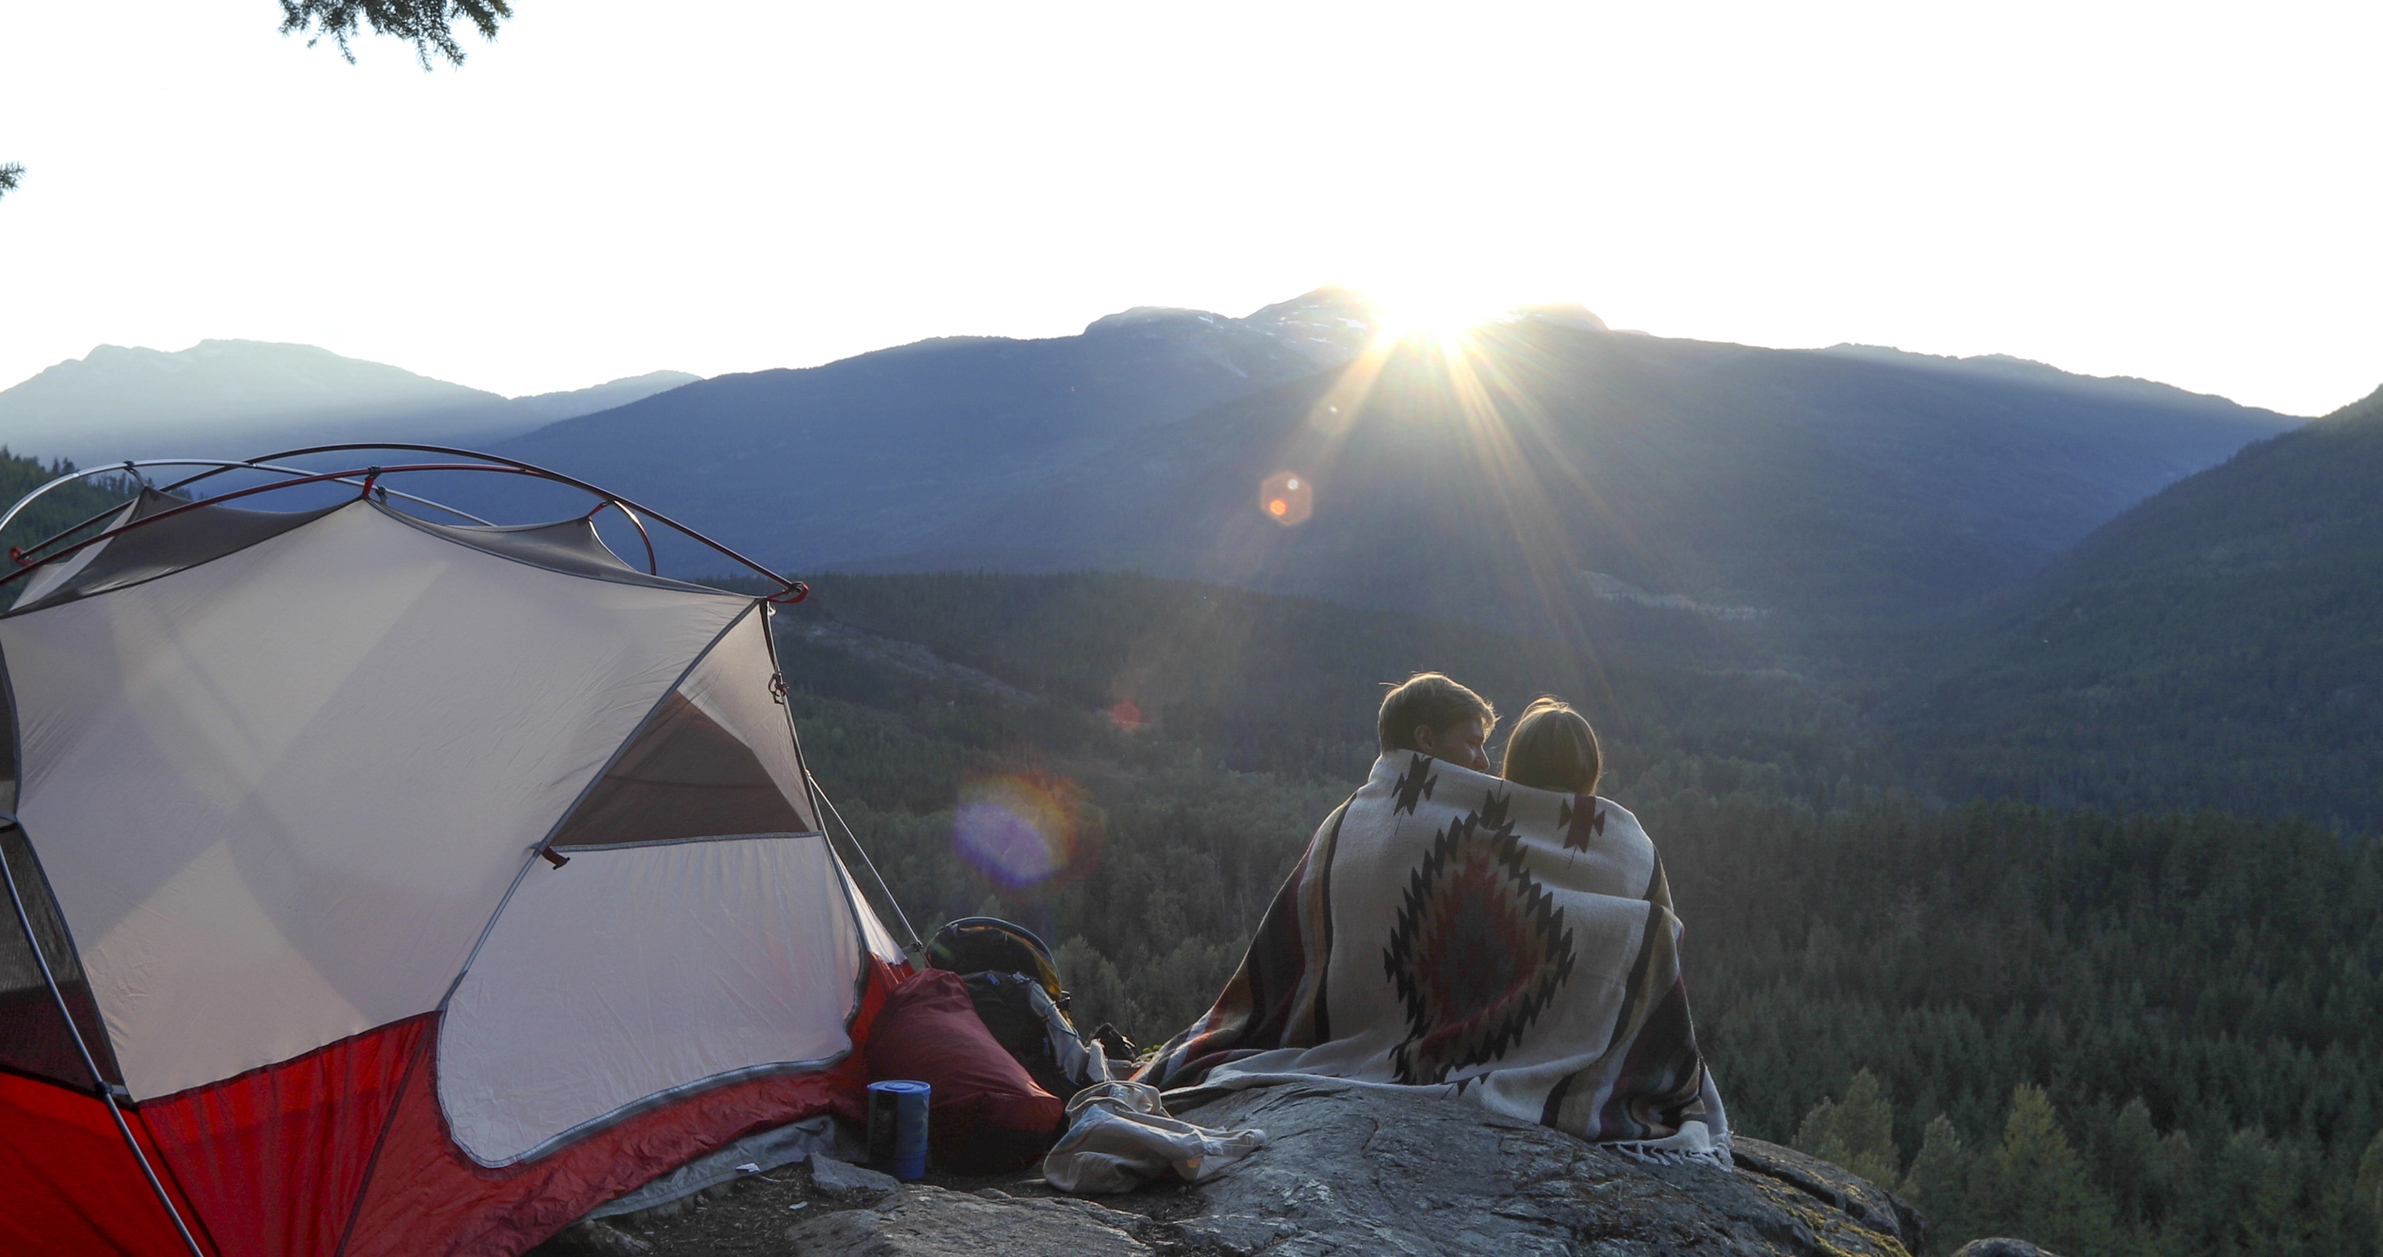 Alone at Last! Tips for Planning a Romantic Camping Trip